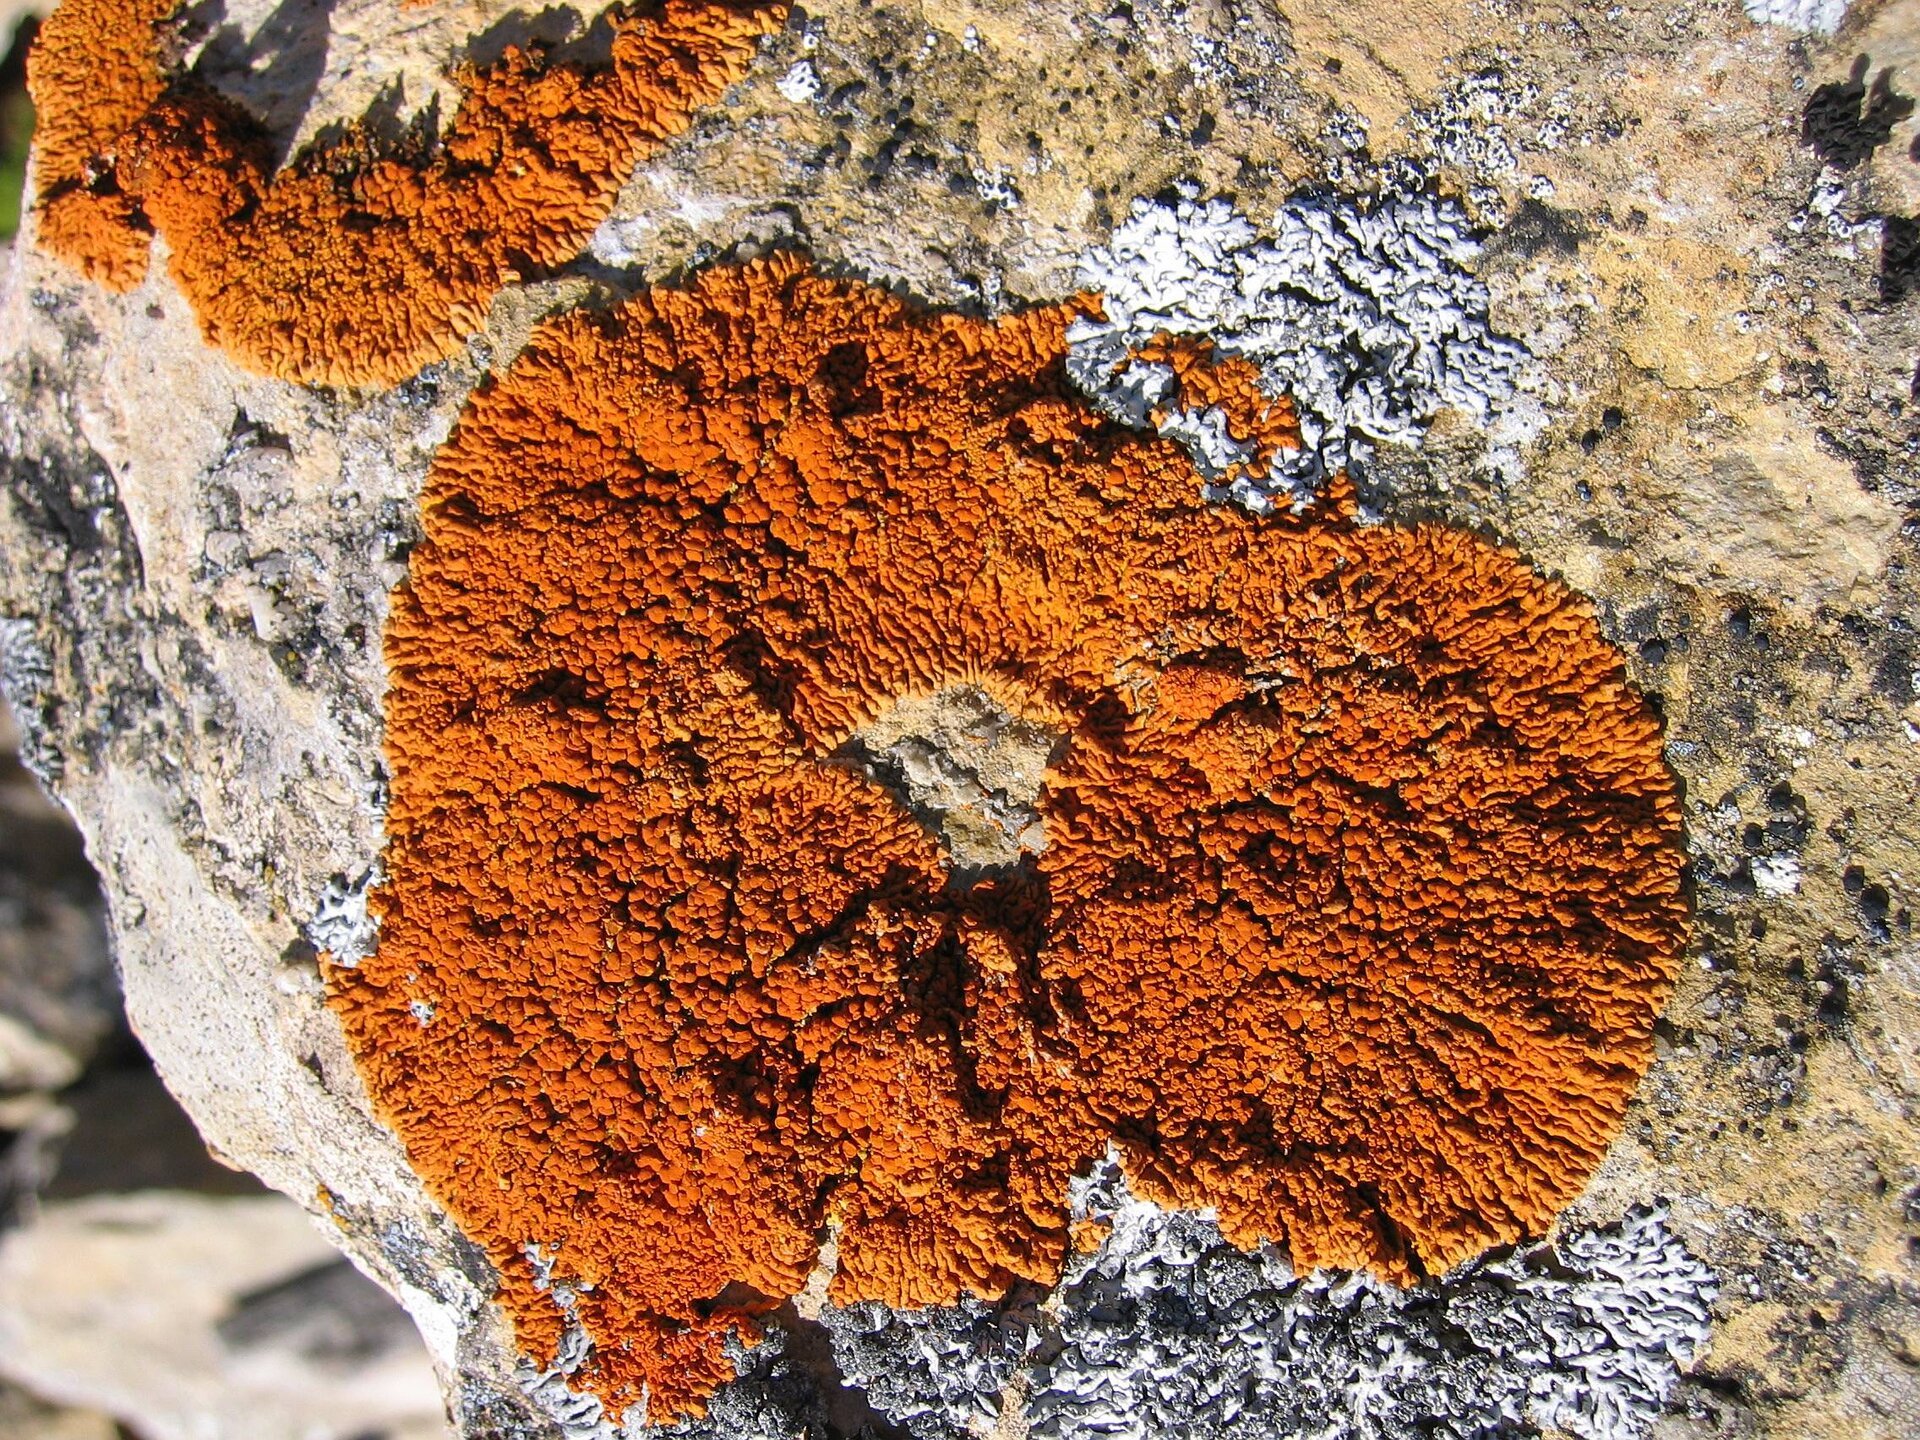 Xanthoria Elegans on Expose-E was collected in the mountains of Spain